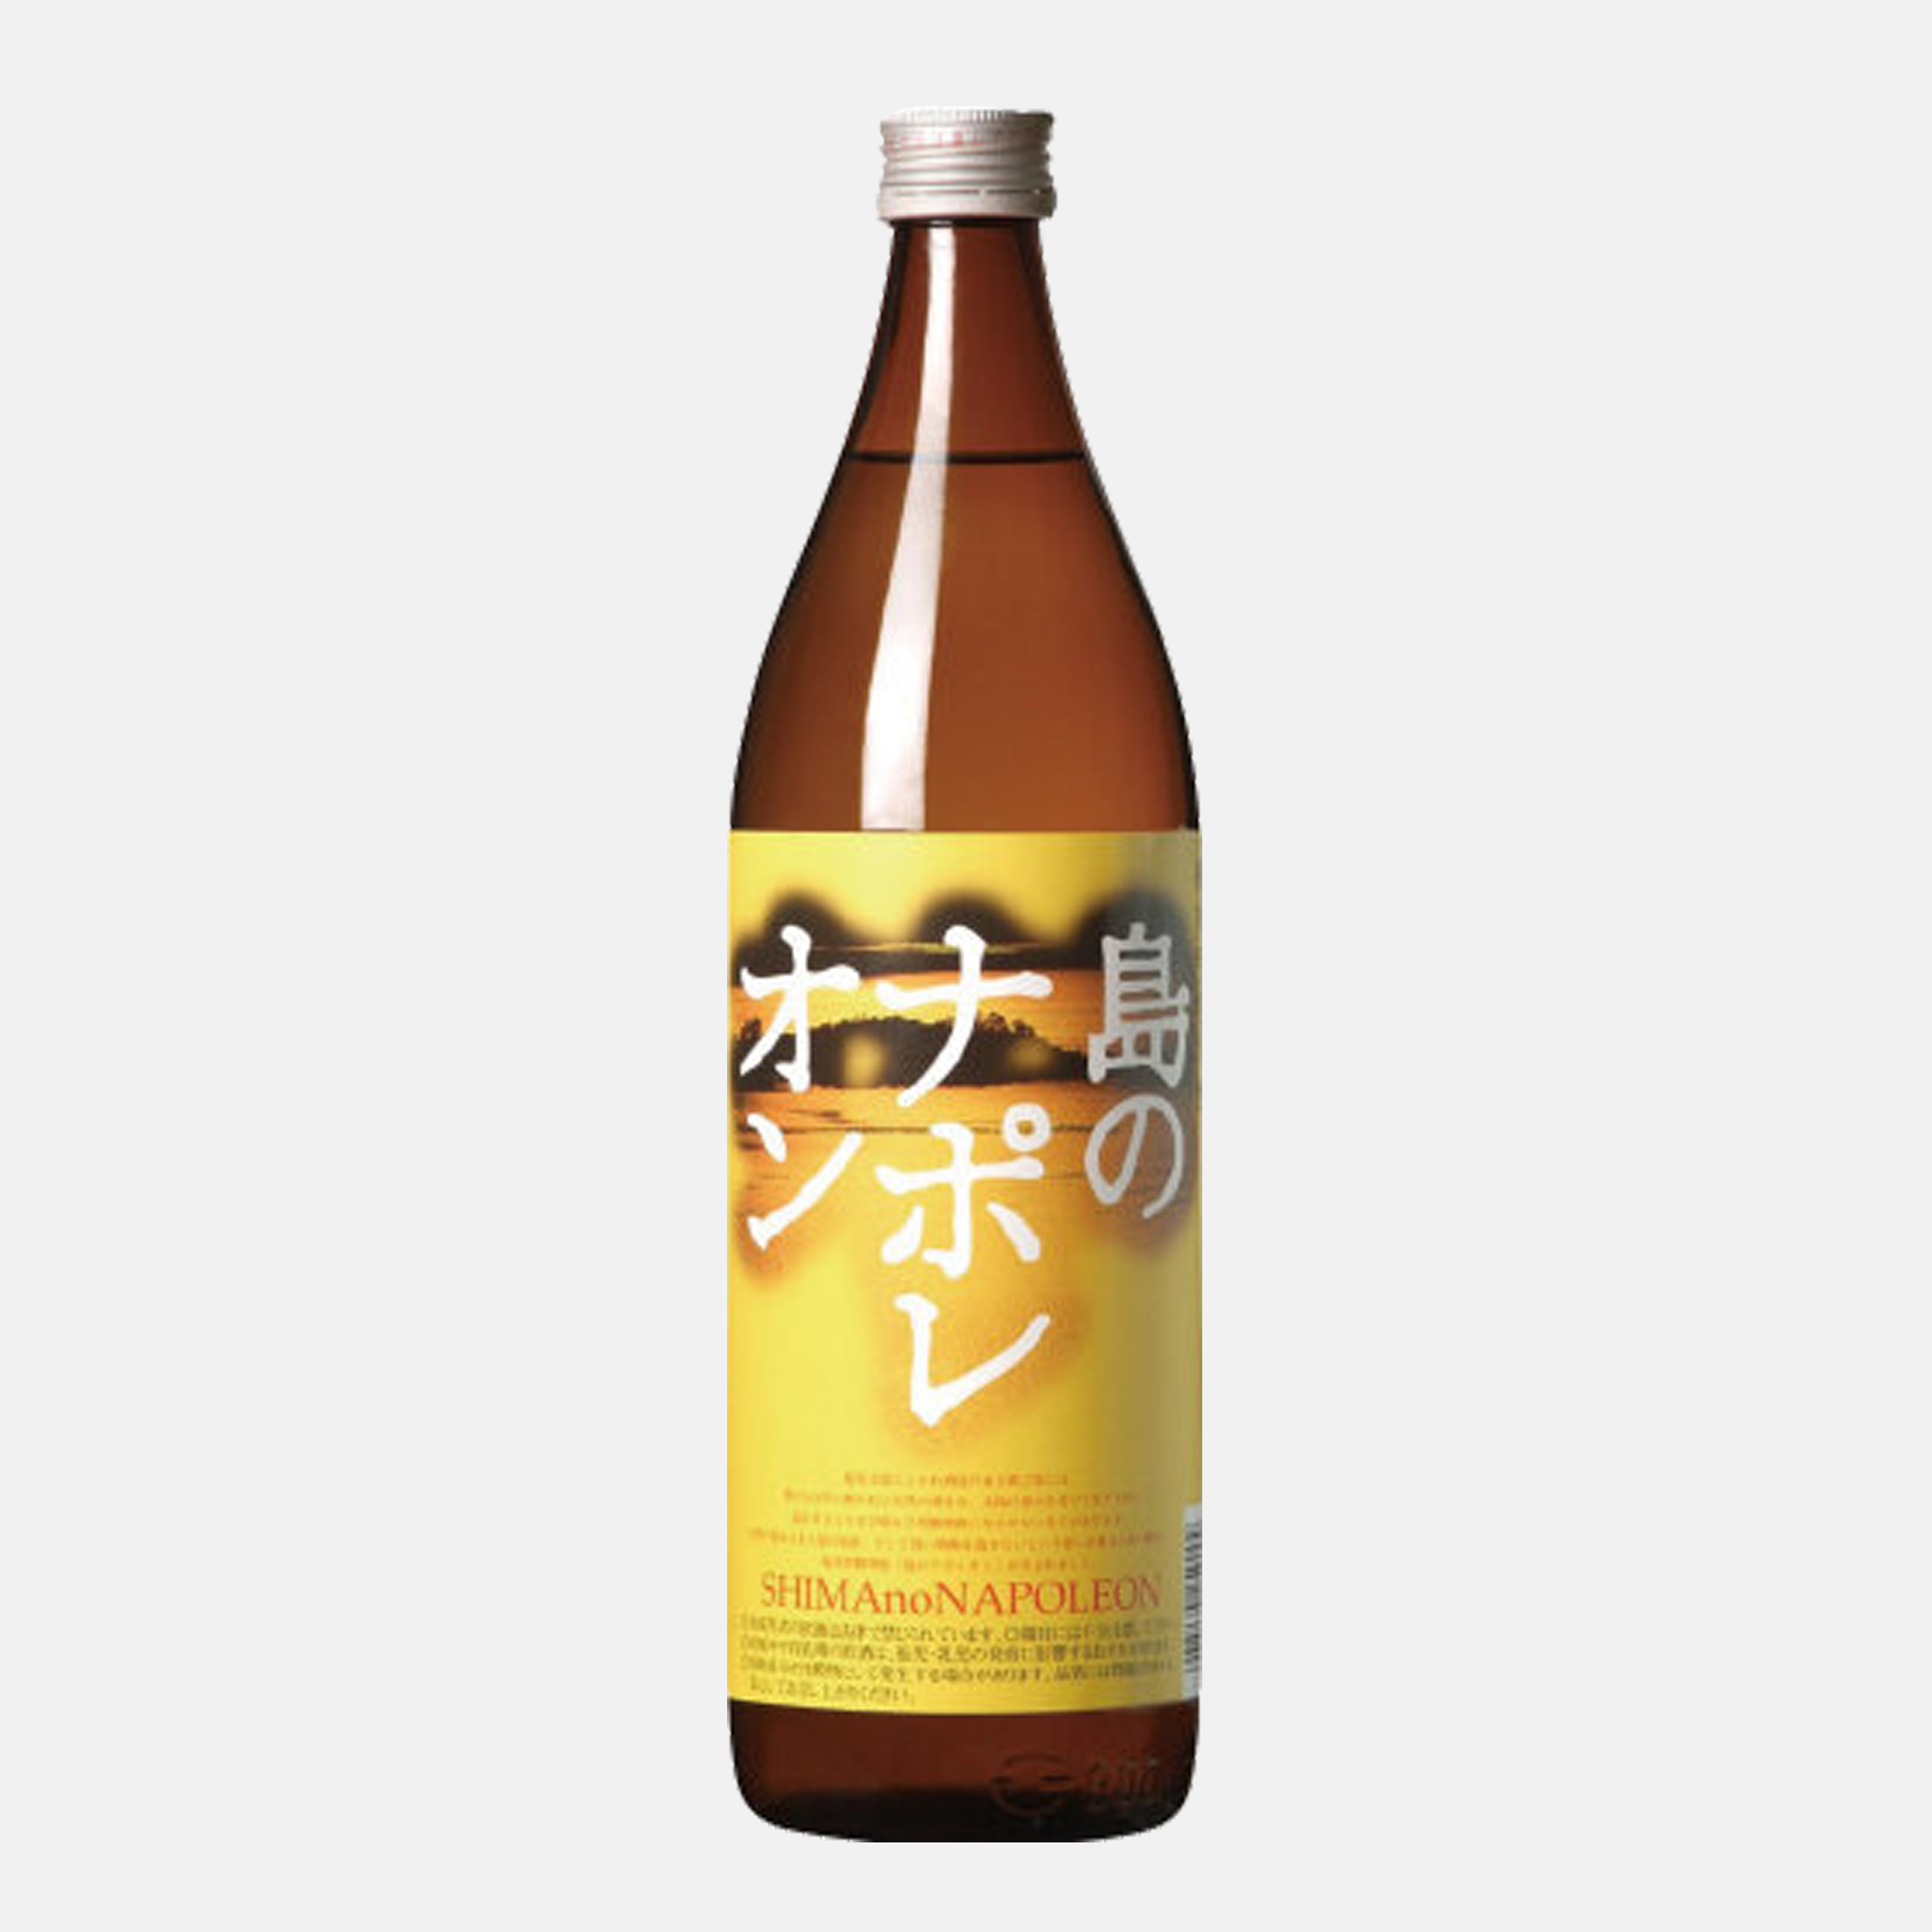 Shimano No Napoleon Brown Sugar Shochu [900ml]